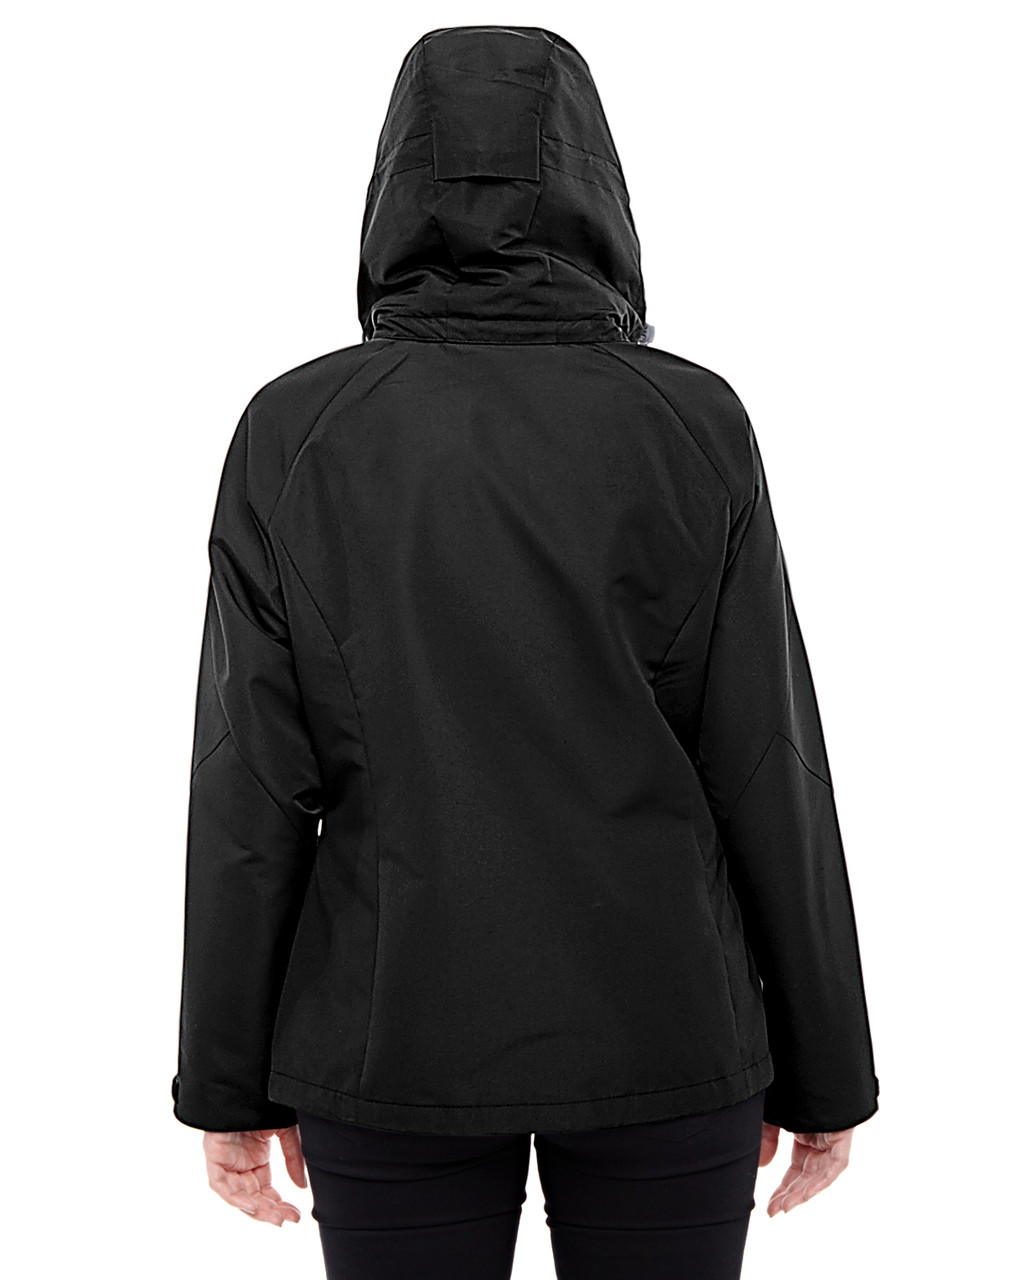 Black/Graphite - back 78226 North End Ladies' Insight Interactive Shell Jacket | Blankclothing.ca